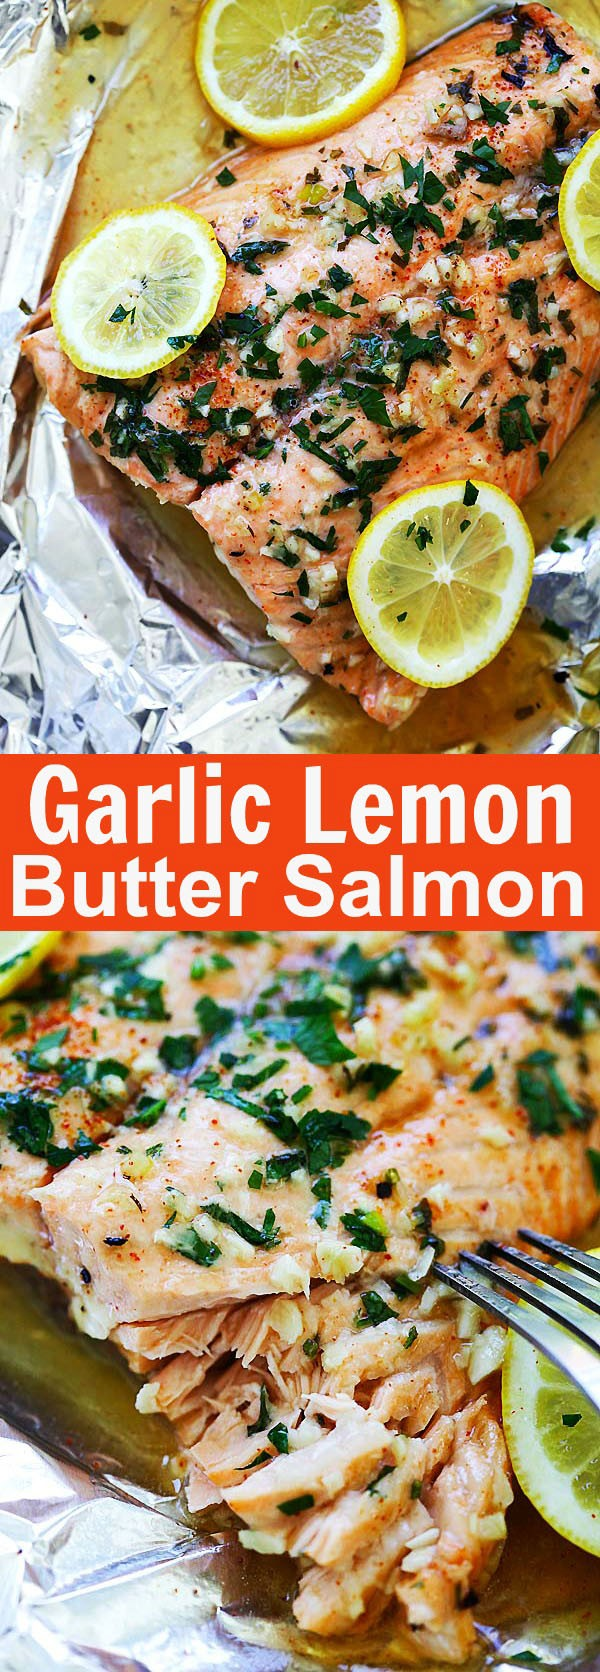 Get the recipe Garlic Lemon Butter Salmon @recipes_to_go